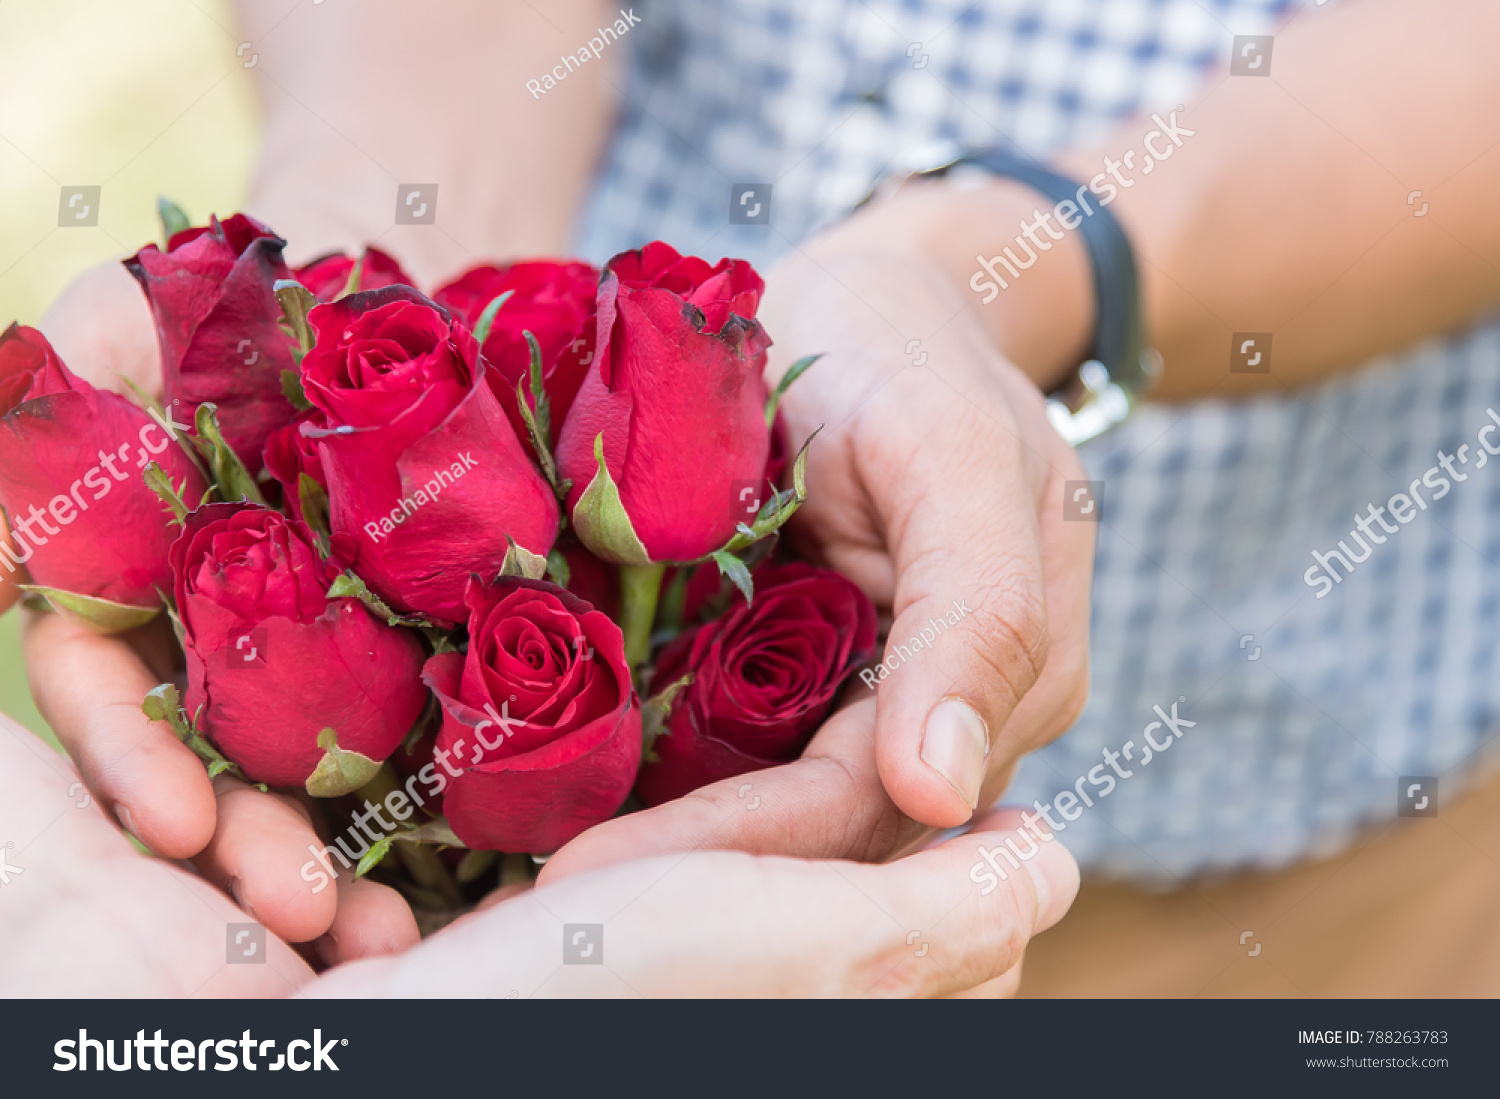 Man Holds Fresh Red Roses Offering Stock Photo Edit Now 788263783